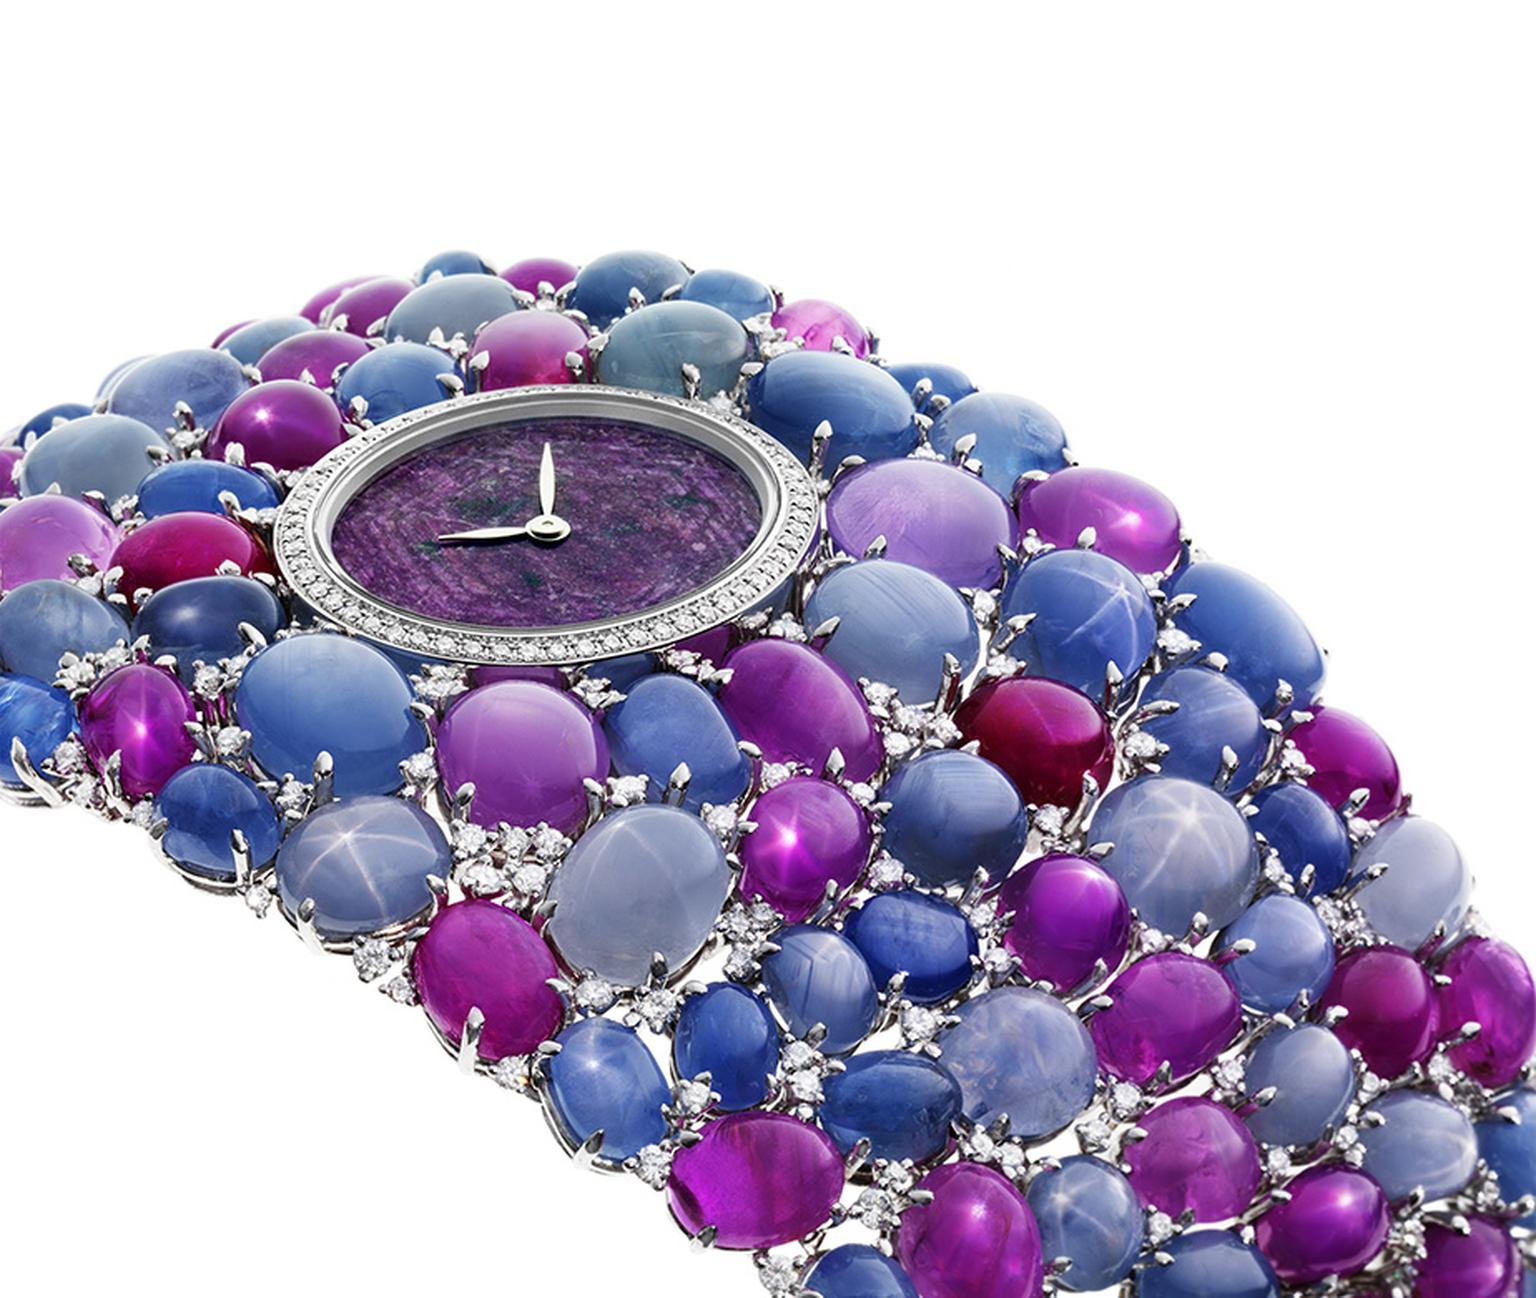 DeLaneau's Grace Stars jewellery watch, set with star rubies and star sapphires, is an exceptional combination of gemmological rarities and exquisite gem-setting.